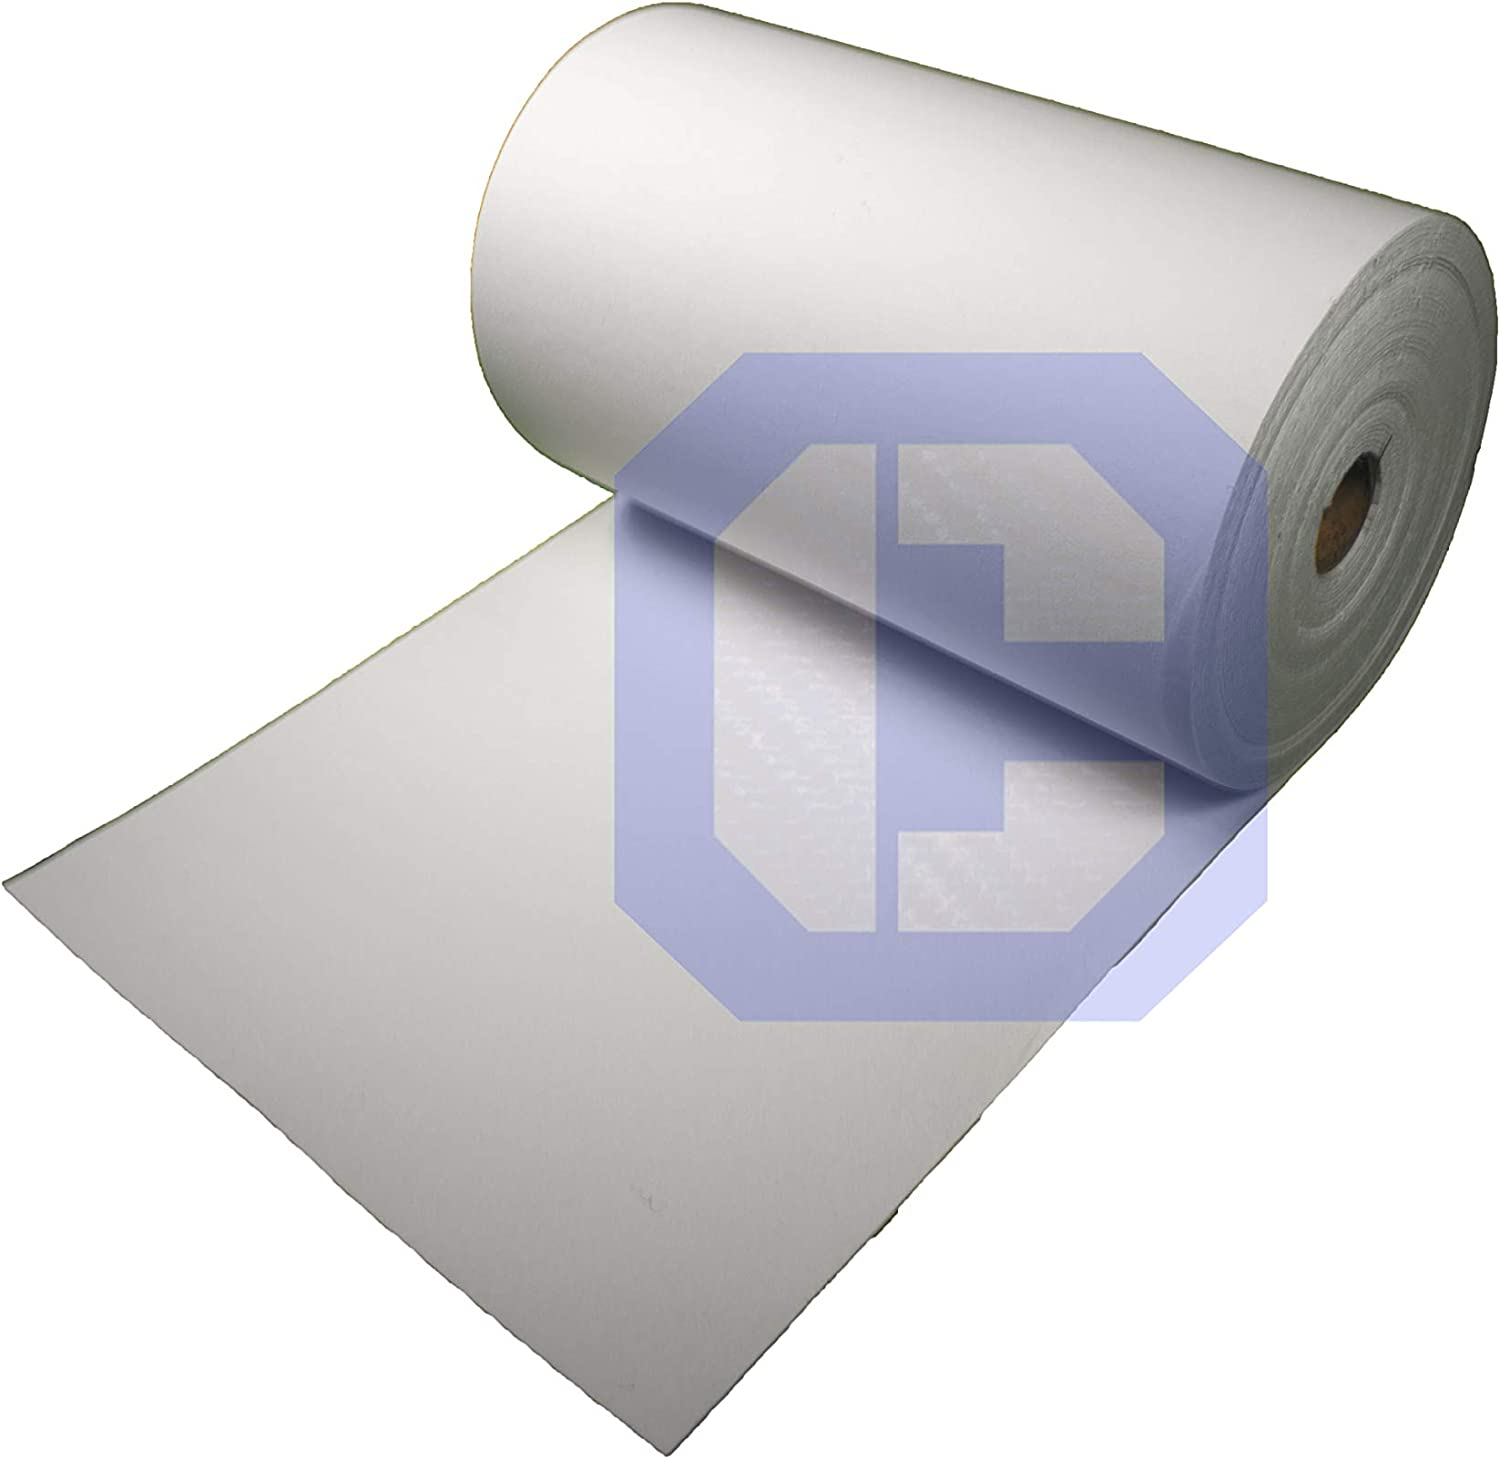 Thickness 1//4 Size 24 x 50 Roll Cera 3170 Ceramic Fiber Paper High Temperature Insulation Gasket or Liner for Kiln Stove Furnace Glass Fusing